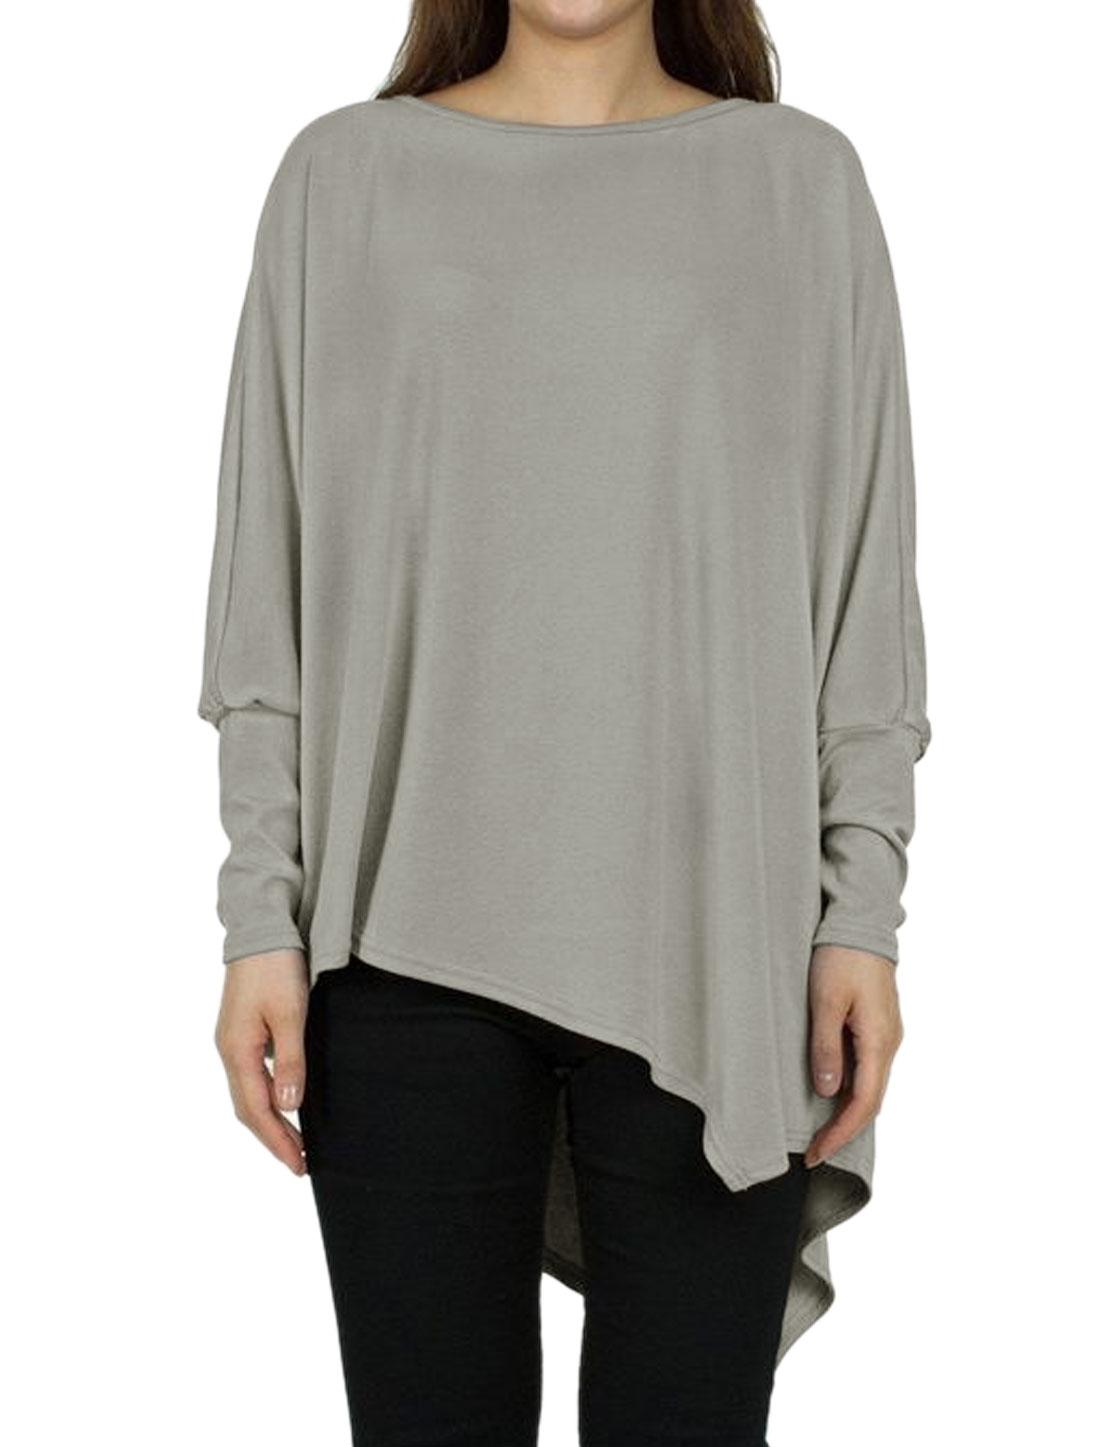 Women Loose Fit Irregular Hem Batwing Sleeves Casual Longline Tee Gray M